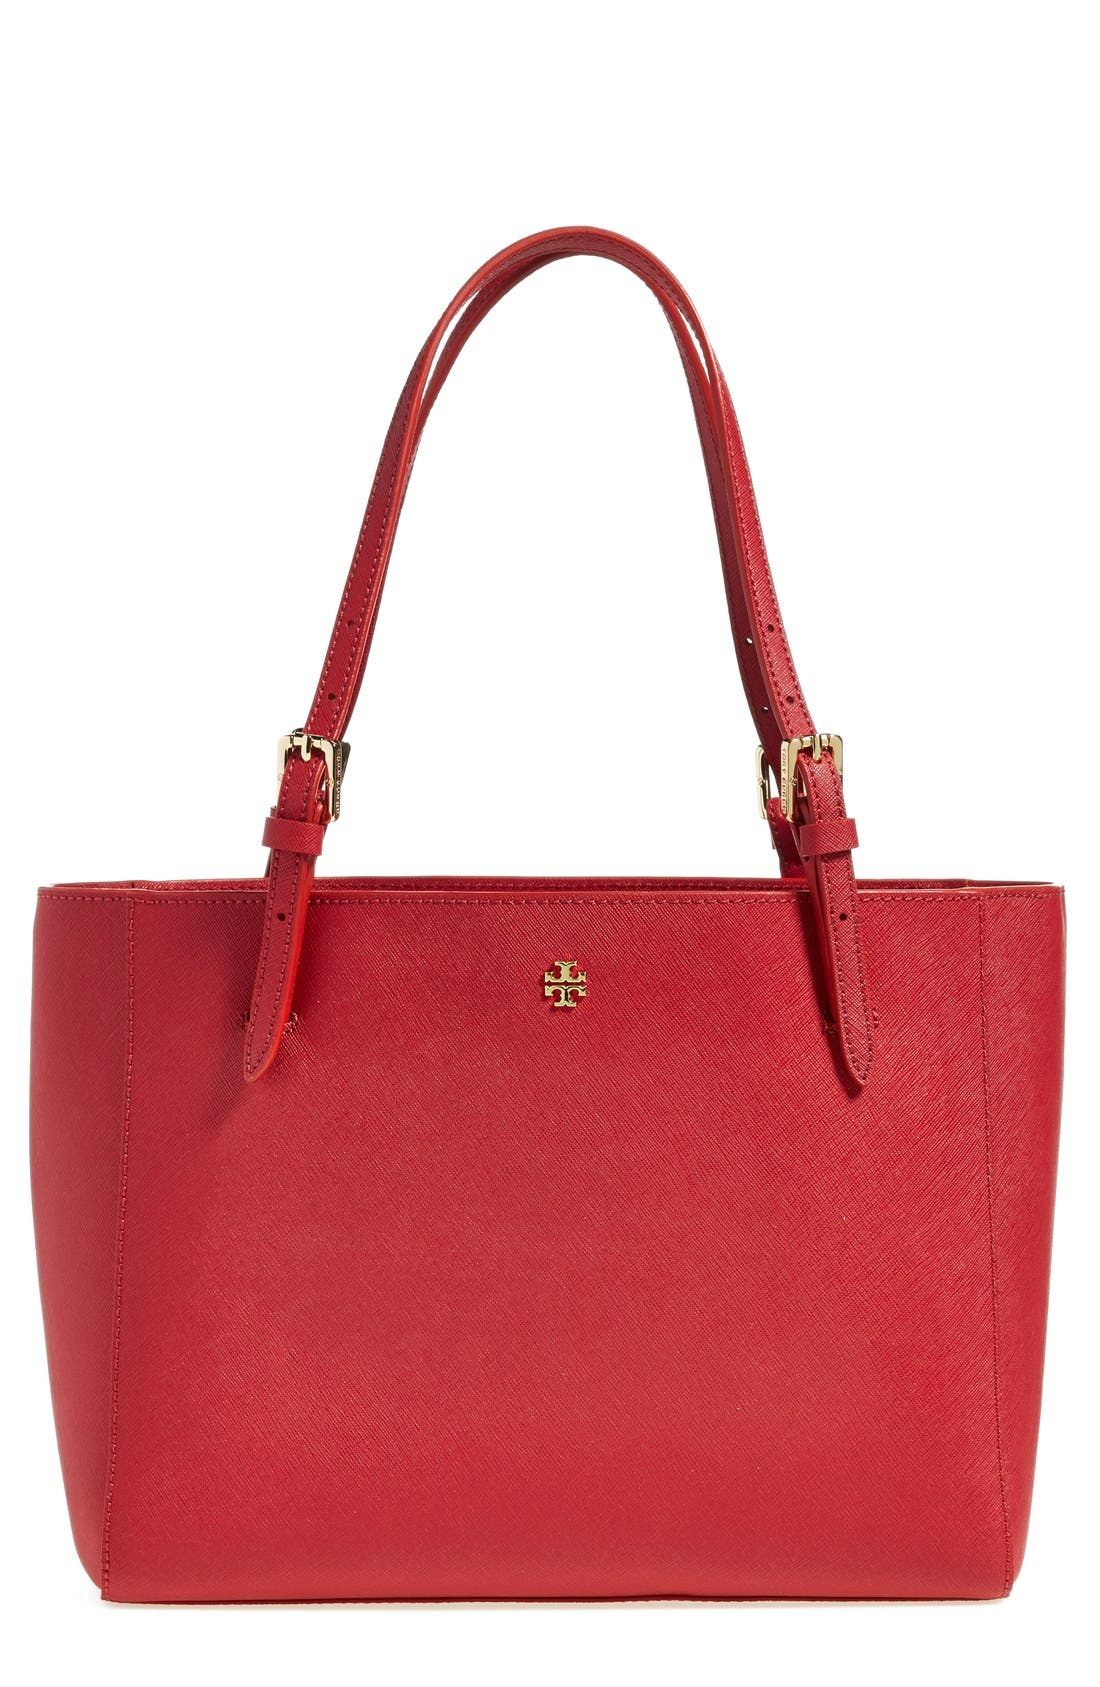 Main Image - Tory Burch 'Small York' Saffiano Leather Buckle Tote